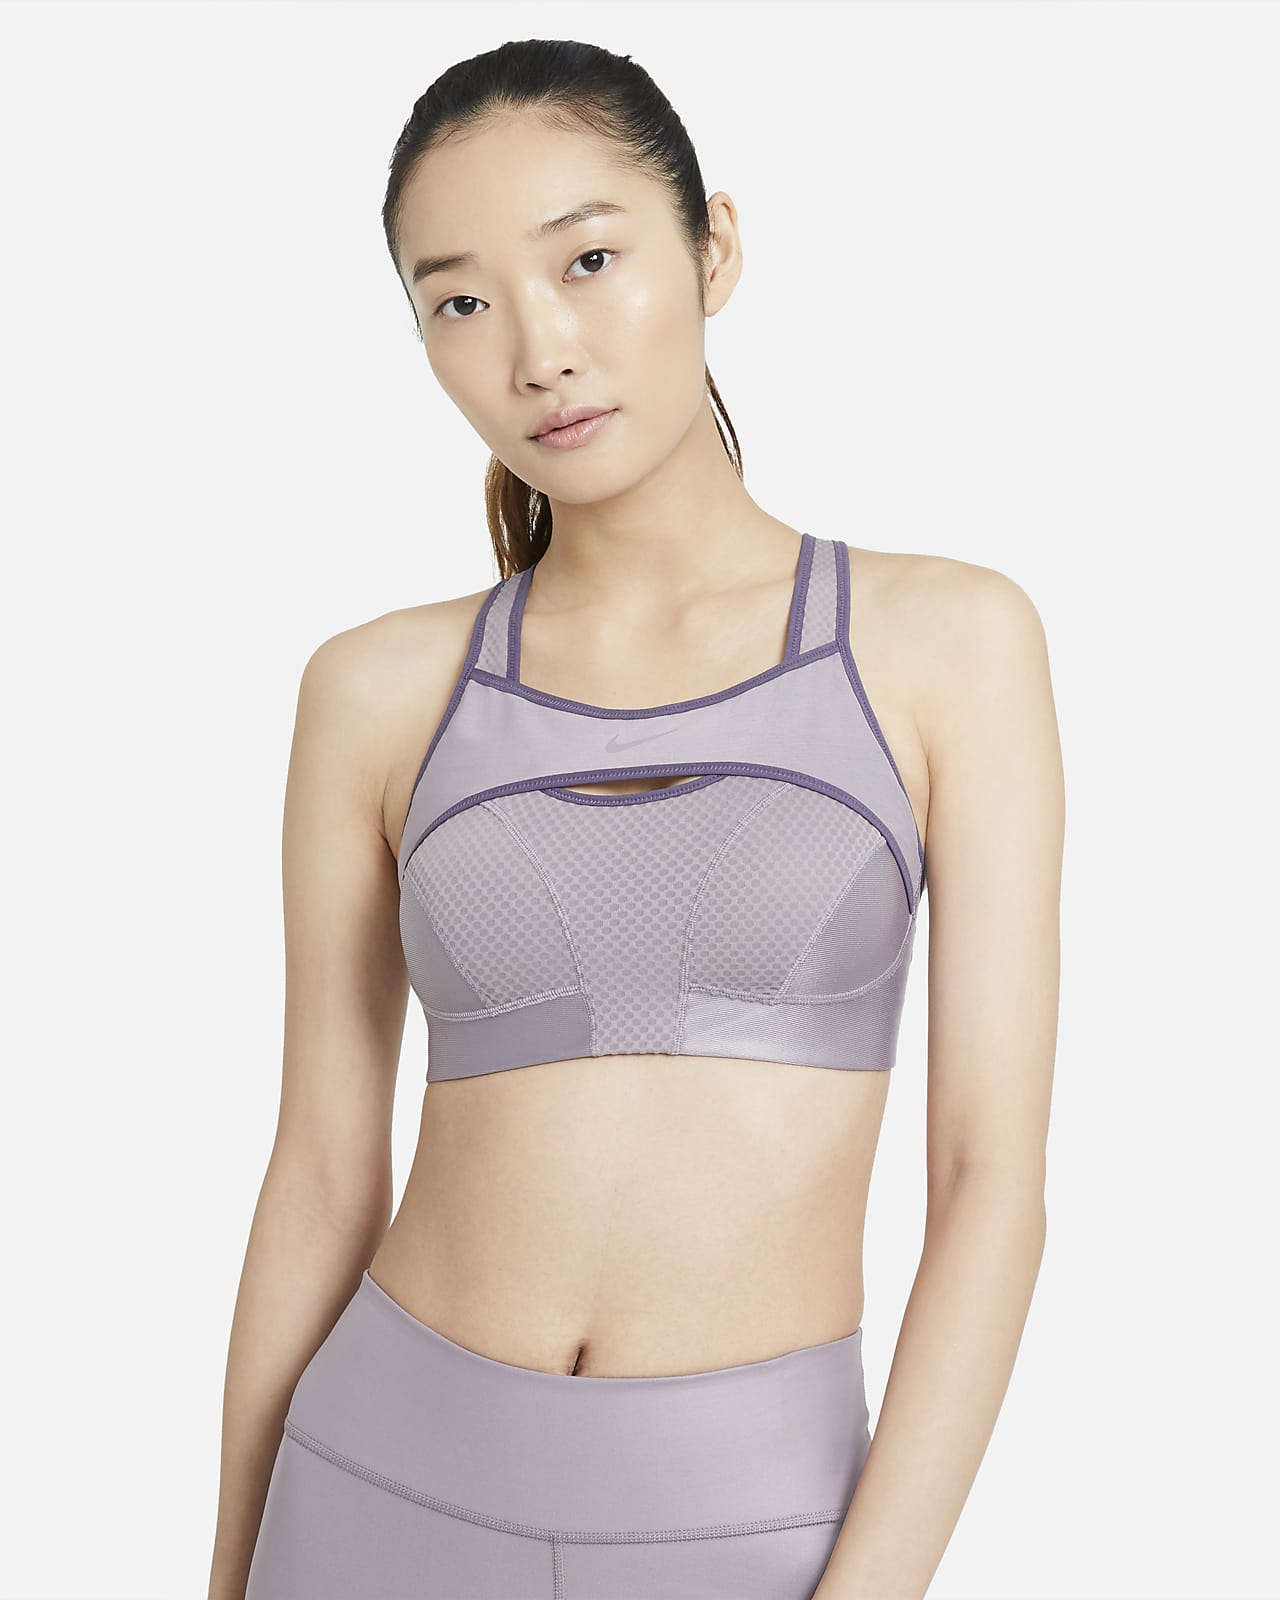 Nike Alpha UltraBreathe Women's High-Support Sports Bra